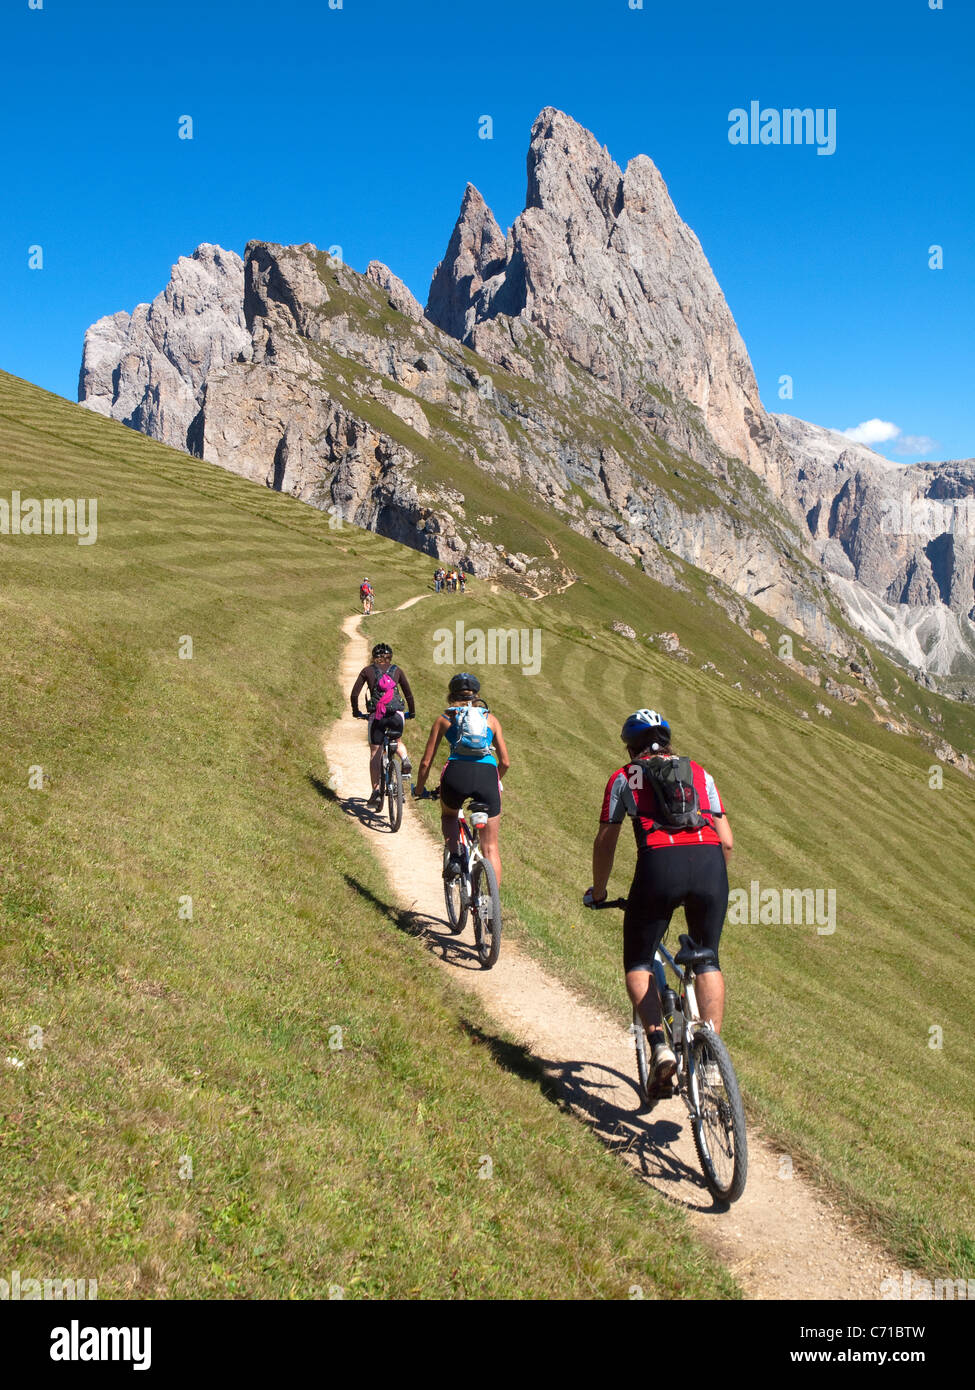 Three mountain bikers are riding a small single trail high in the mountains, with a rock cliff in the background - Stock Image